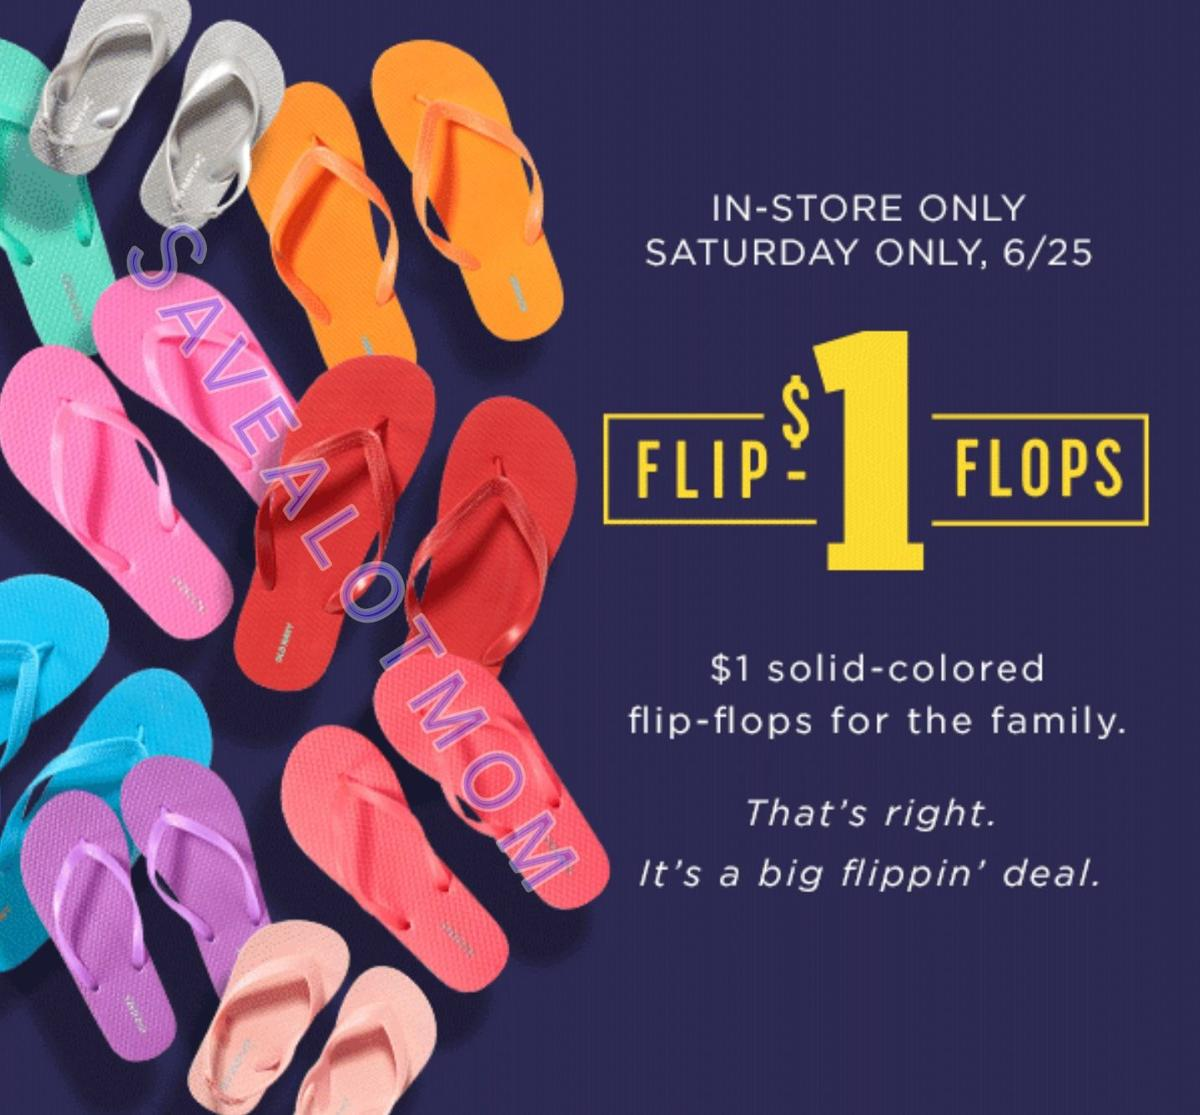 Old navy 1 flip flops this saturday save a lot mom kdhnews 1 flip flops publicscrutiny Gallery